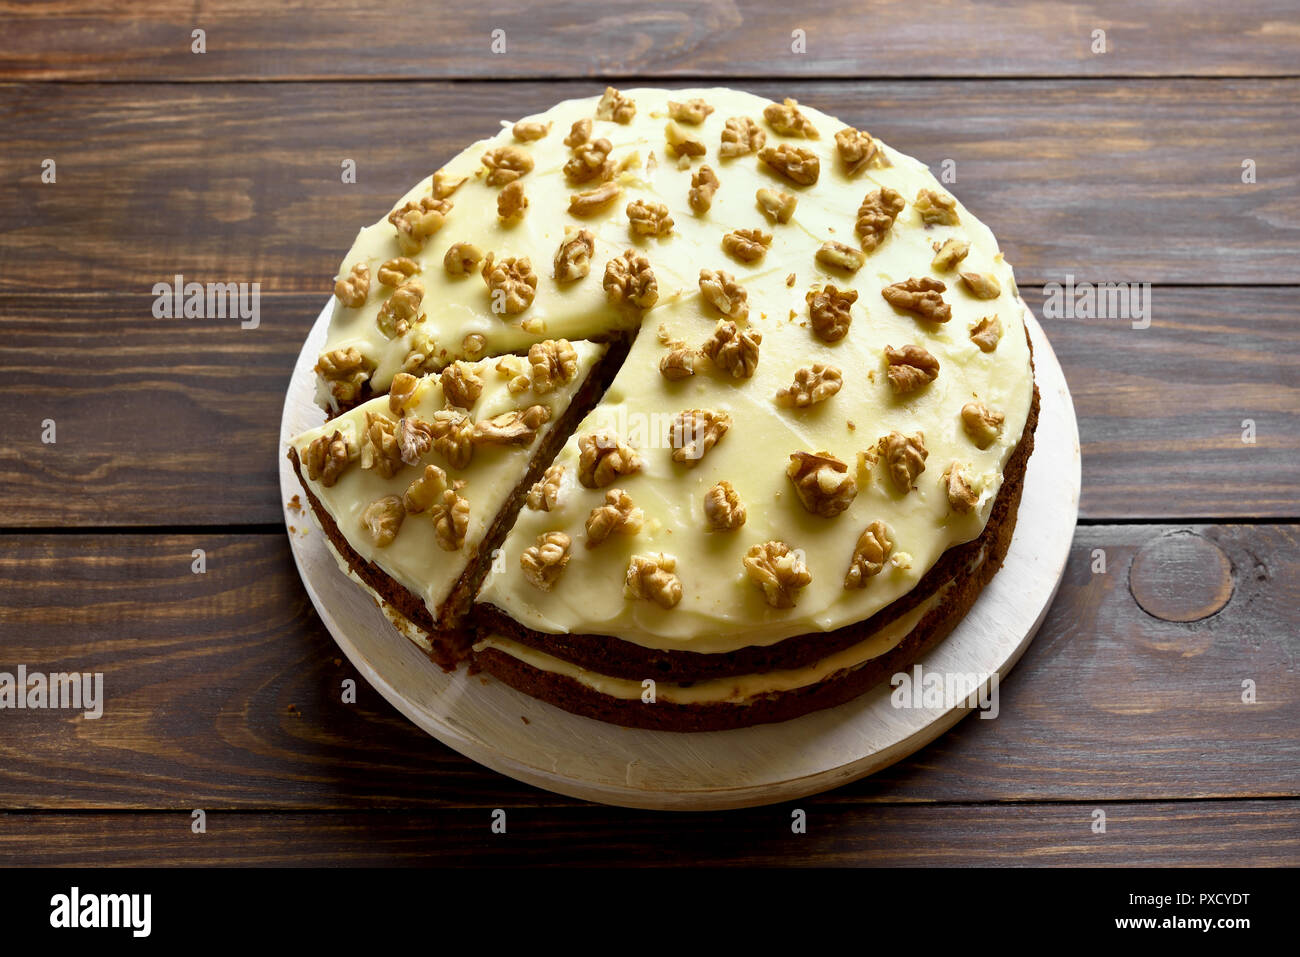 Tasty carrot cake on wooden table. Healthy homemade baking. - Stock Image